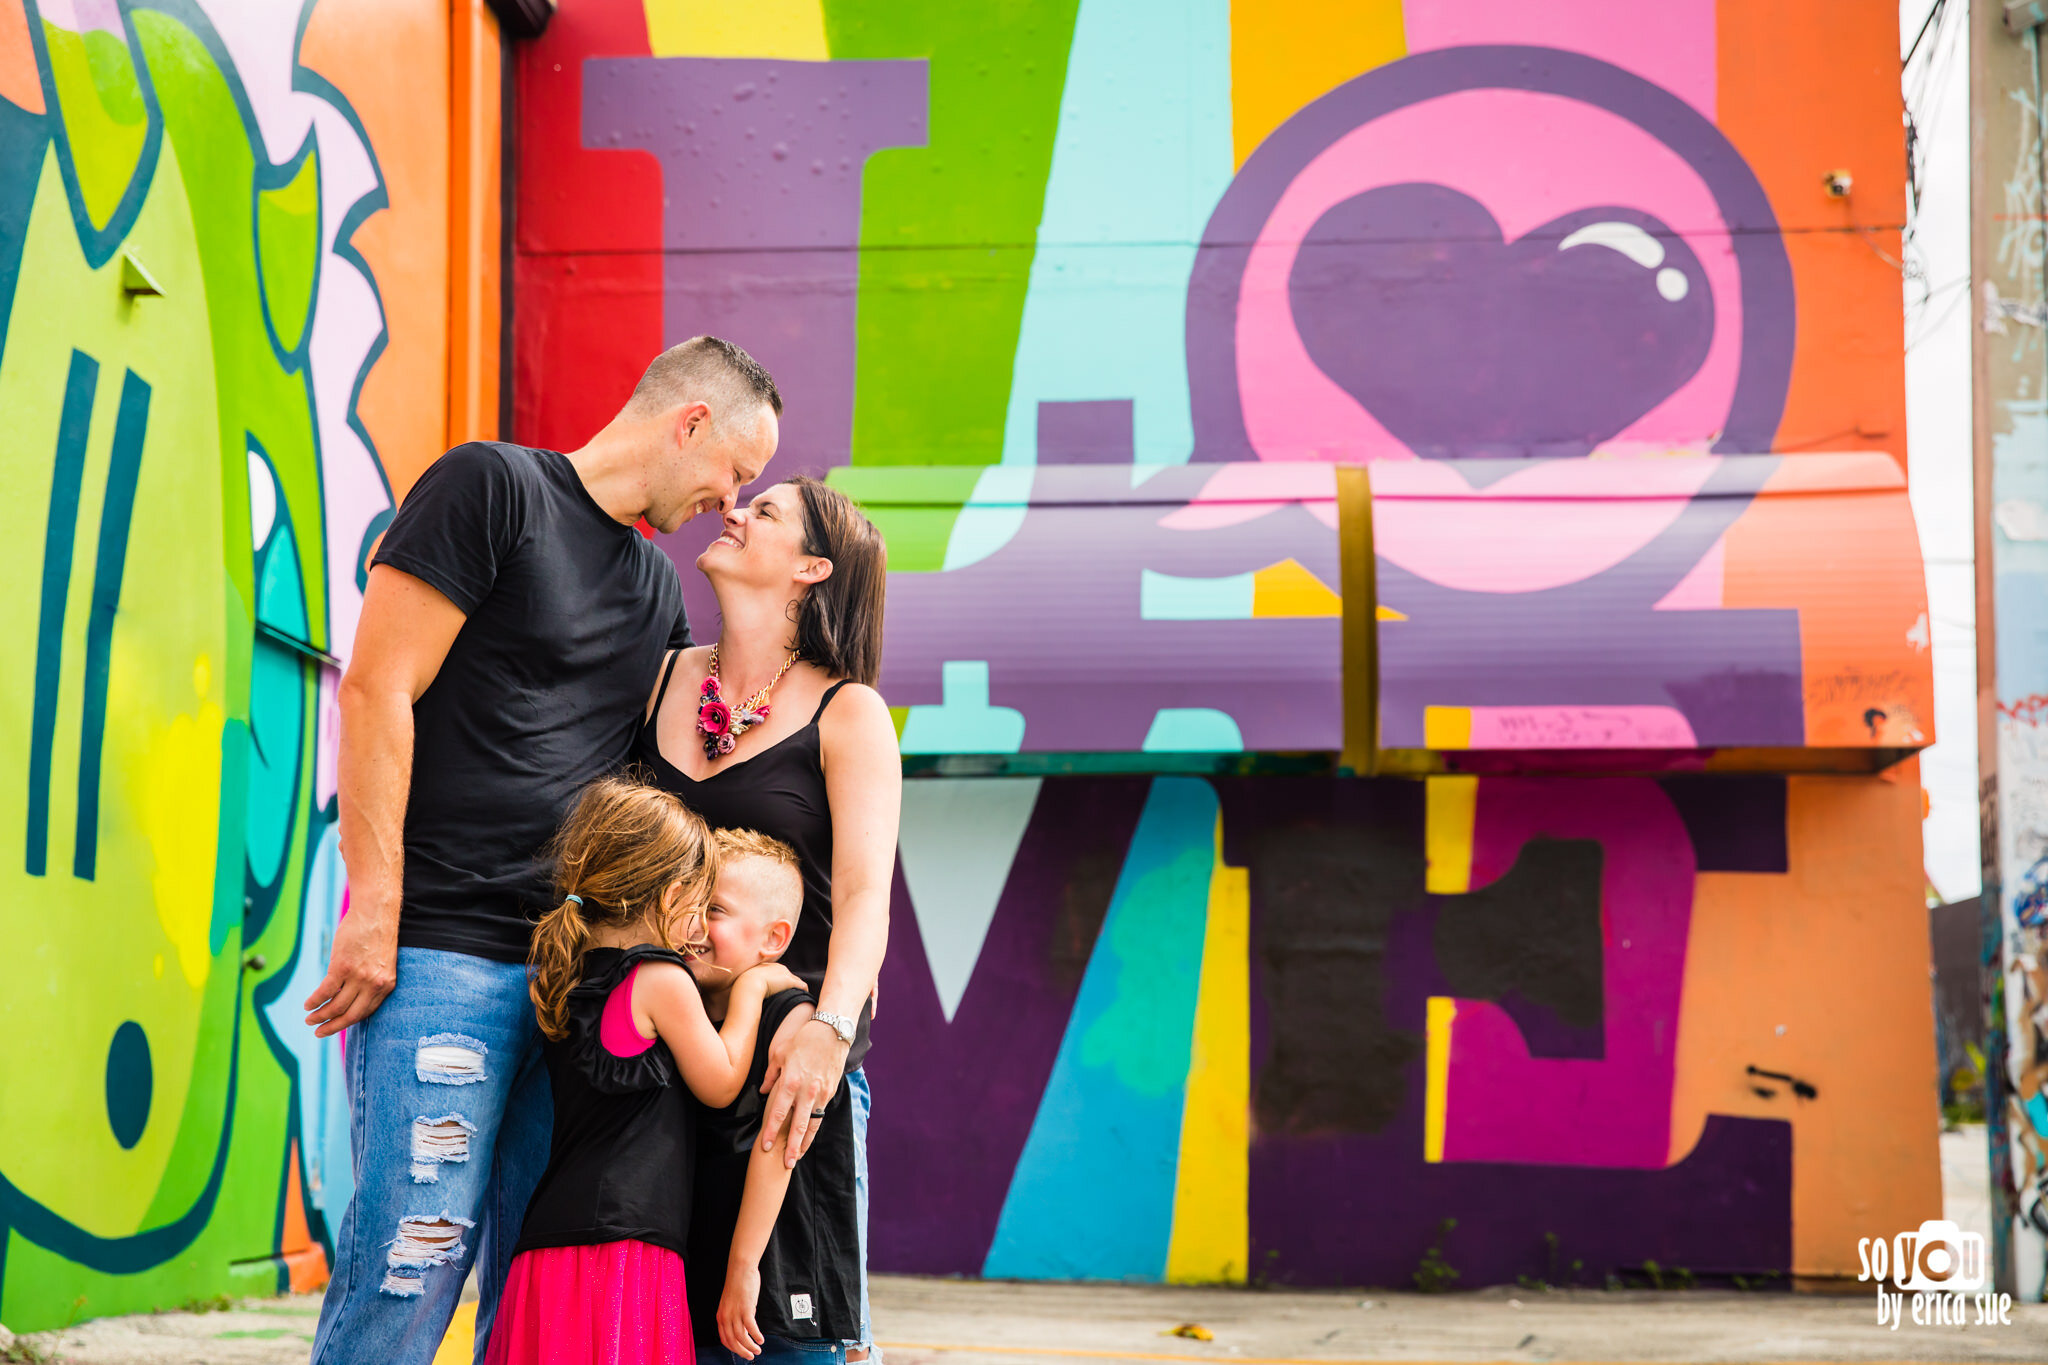 so-you-by-erica-wynwood-walls-lifestyle-family-photographer-session-2533.JPG